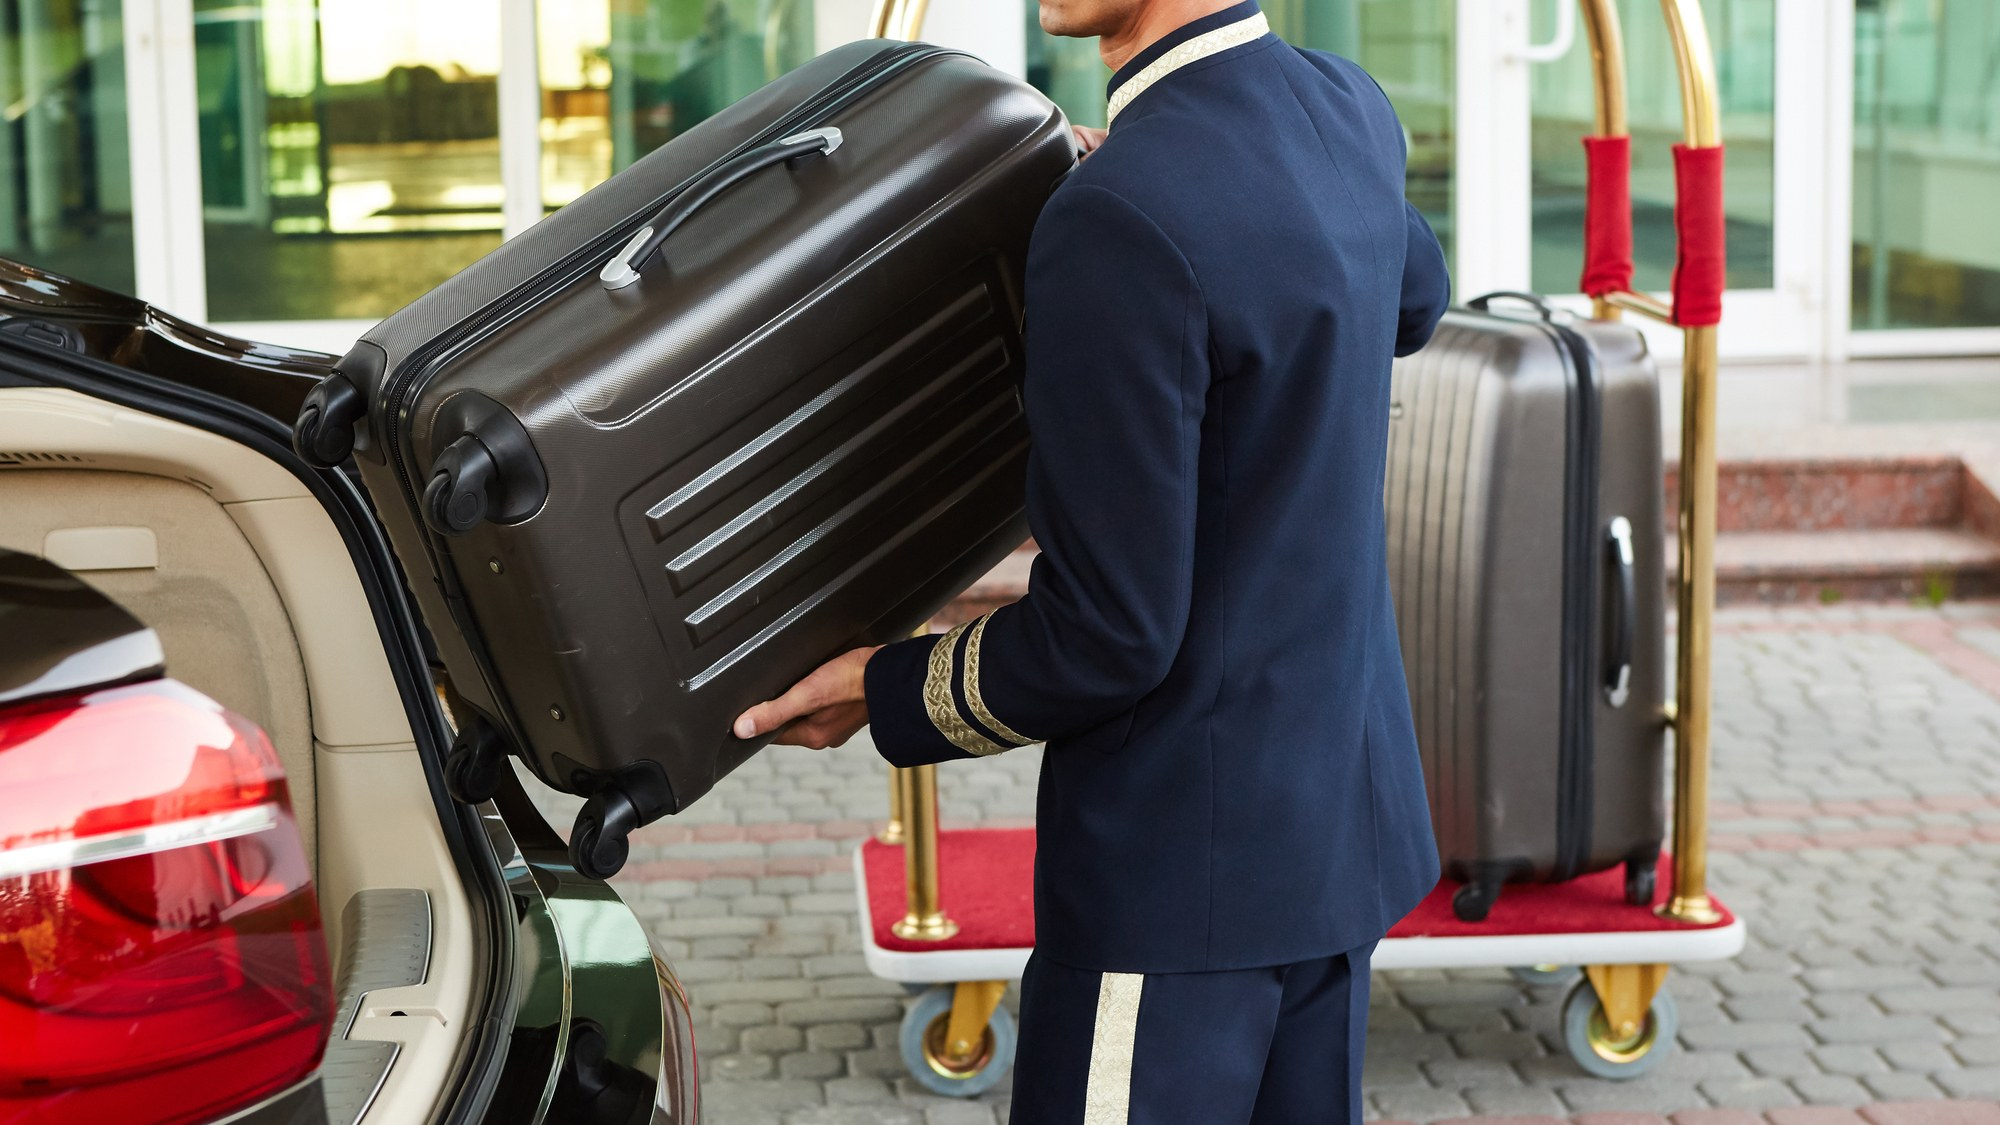 Bellman helping with luggage